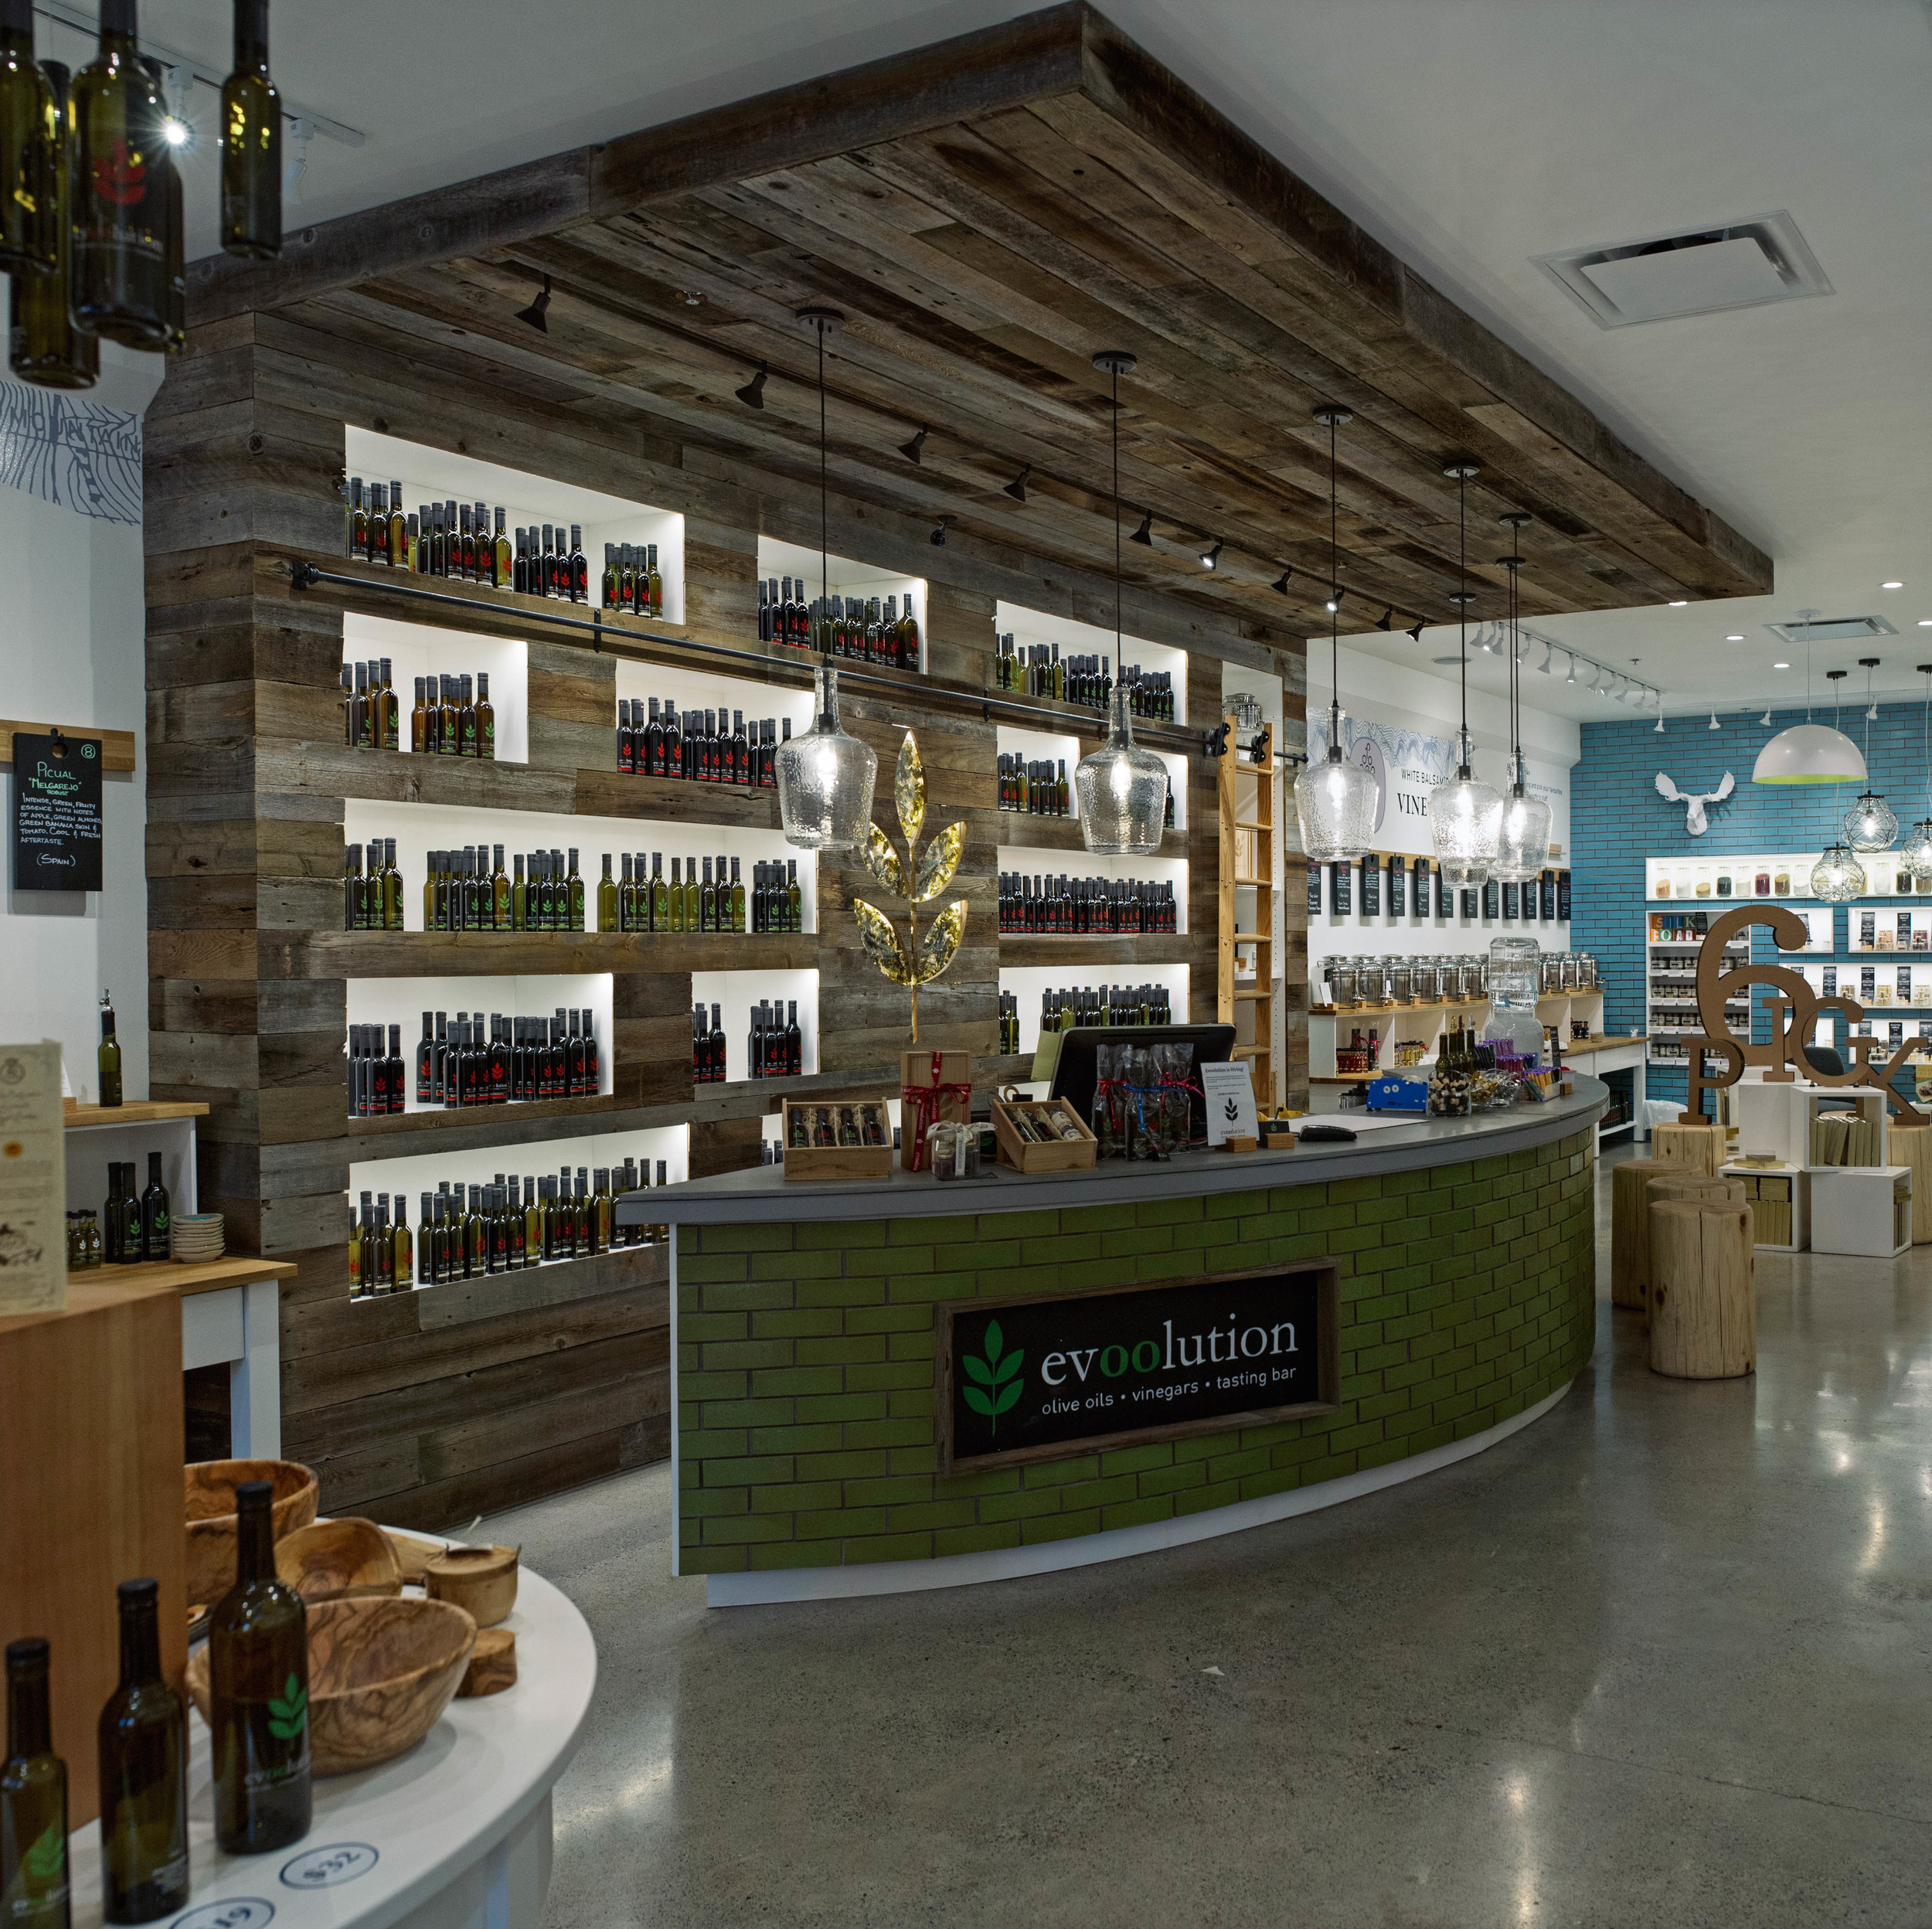 Evoolution Canmore:   This 1,400ft2 new olive oil and vinegar retail store and tasting bar was designed by Kaben Design.   This store incorporated high end, reclaimed and sustainable finishes to deliver and absolutely stunning and busy store to Main St. in Canmore, AB.  ACS was involved from day one to help conceive the budget and schedule, ensure it was in line with the owners expectations and ultimately deliver on time and on budget.